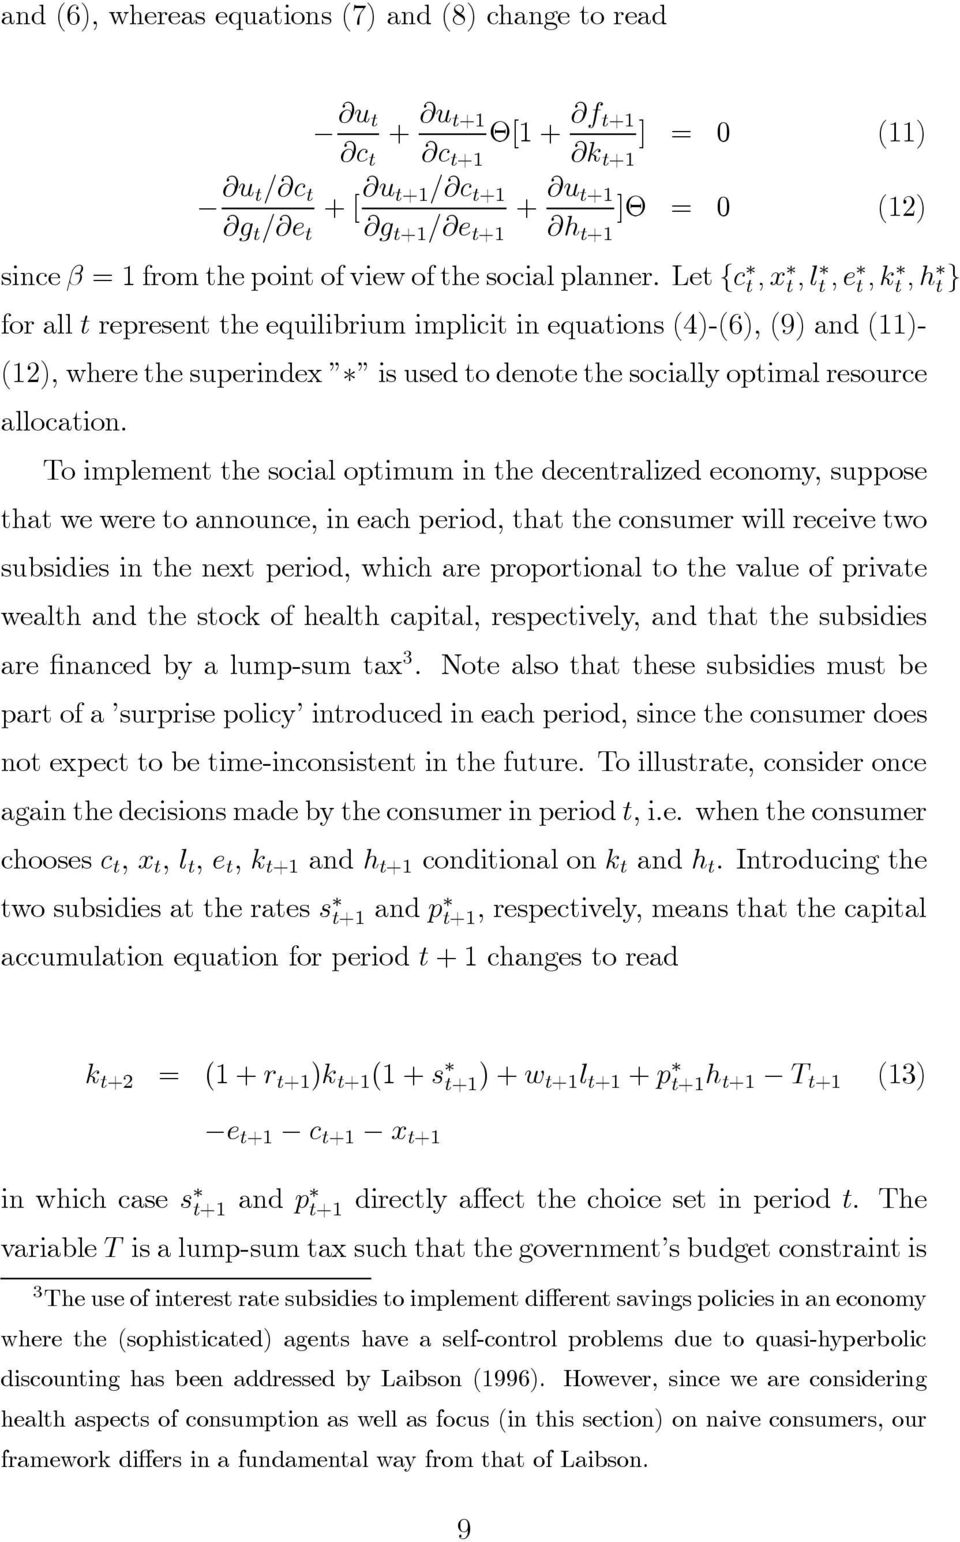 Let {c t,x t,lt,e t,kt,h t } for all t represent the equilibrium implicit in equations (4)-(6), (9) and (11)- (12), where the superindex is used to denote the socially optimal resource allocation.